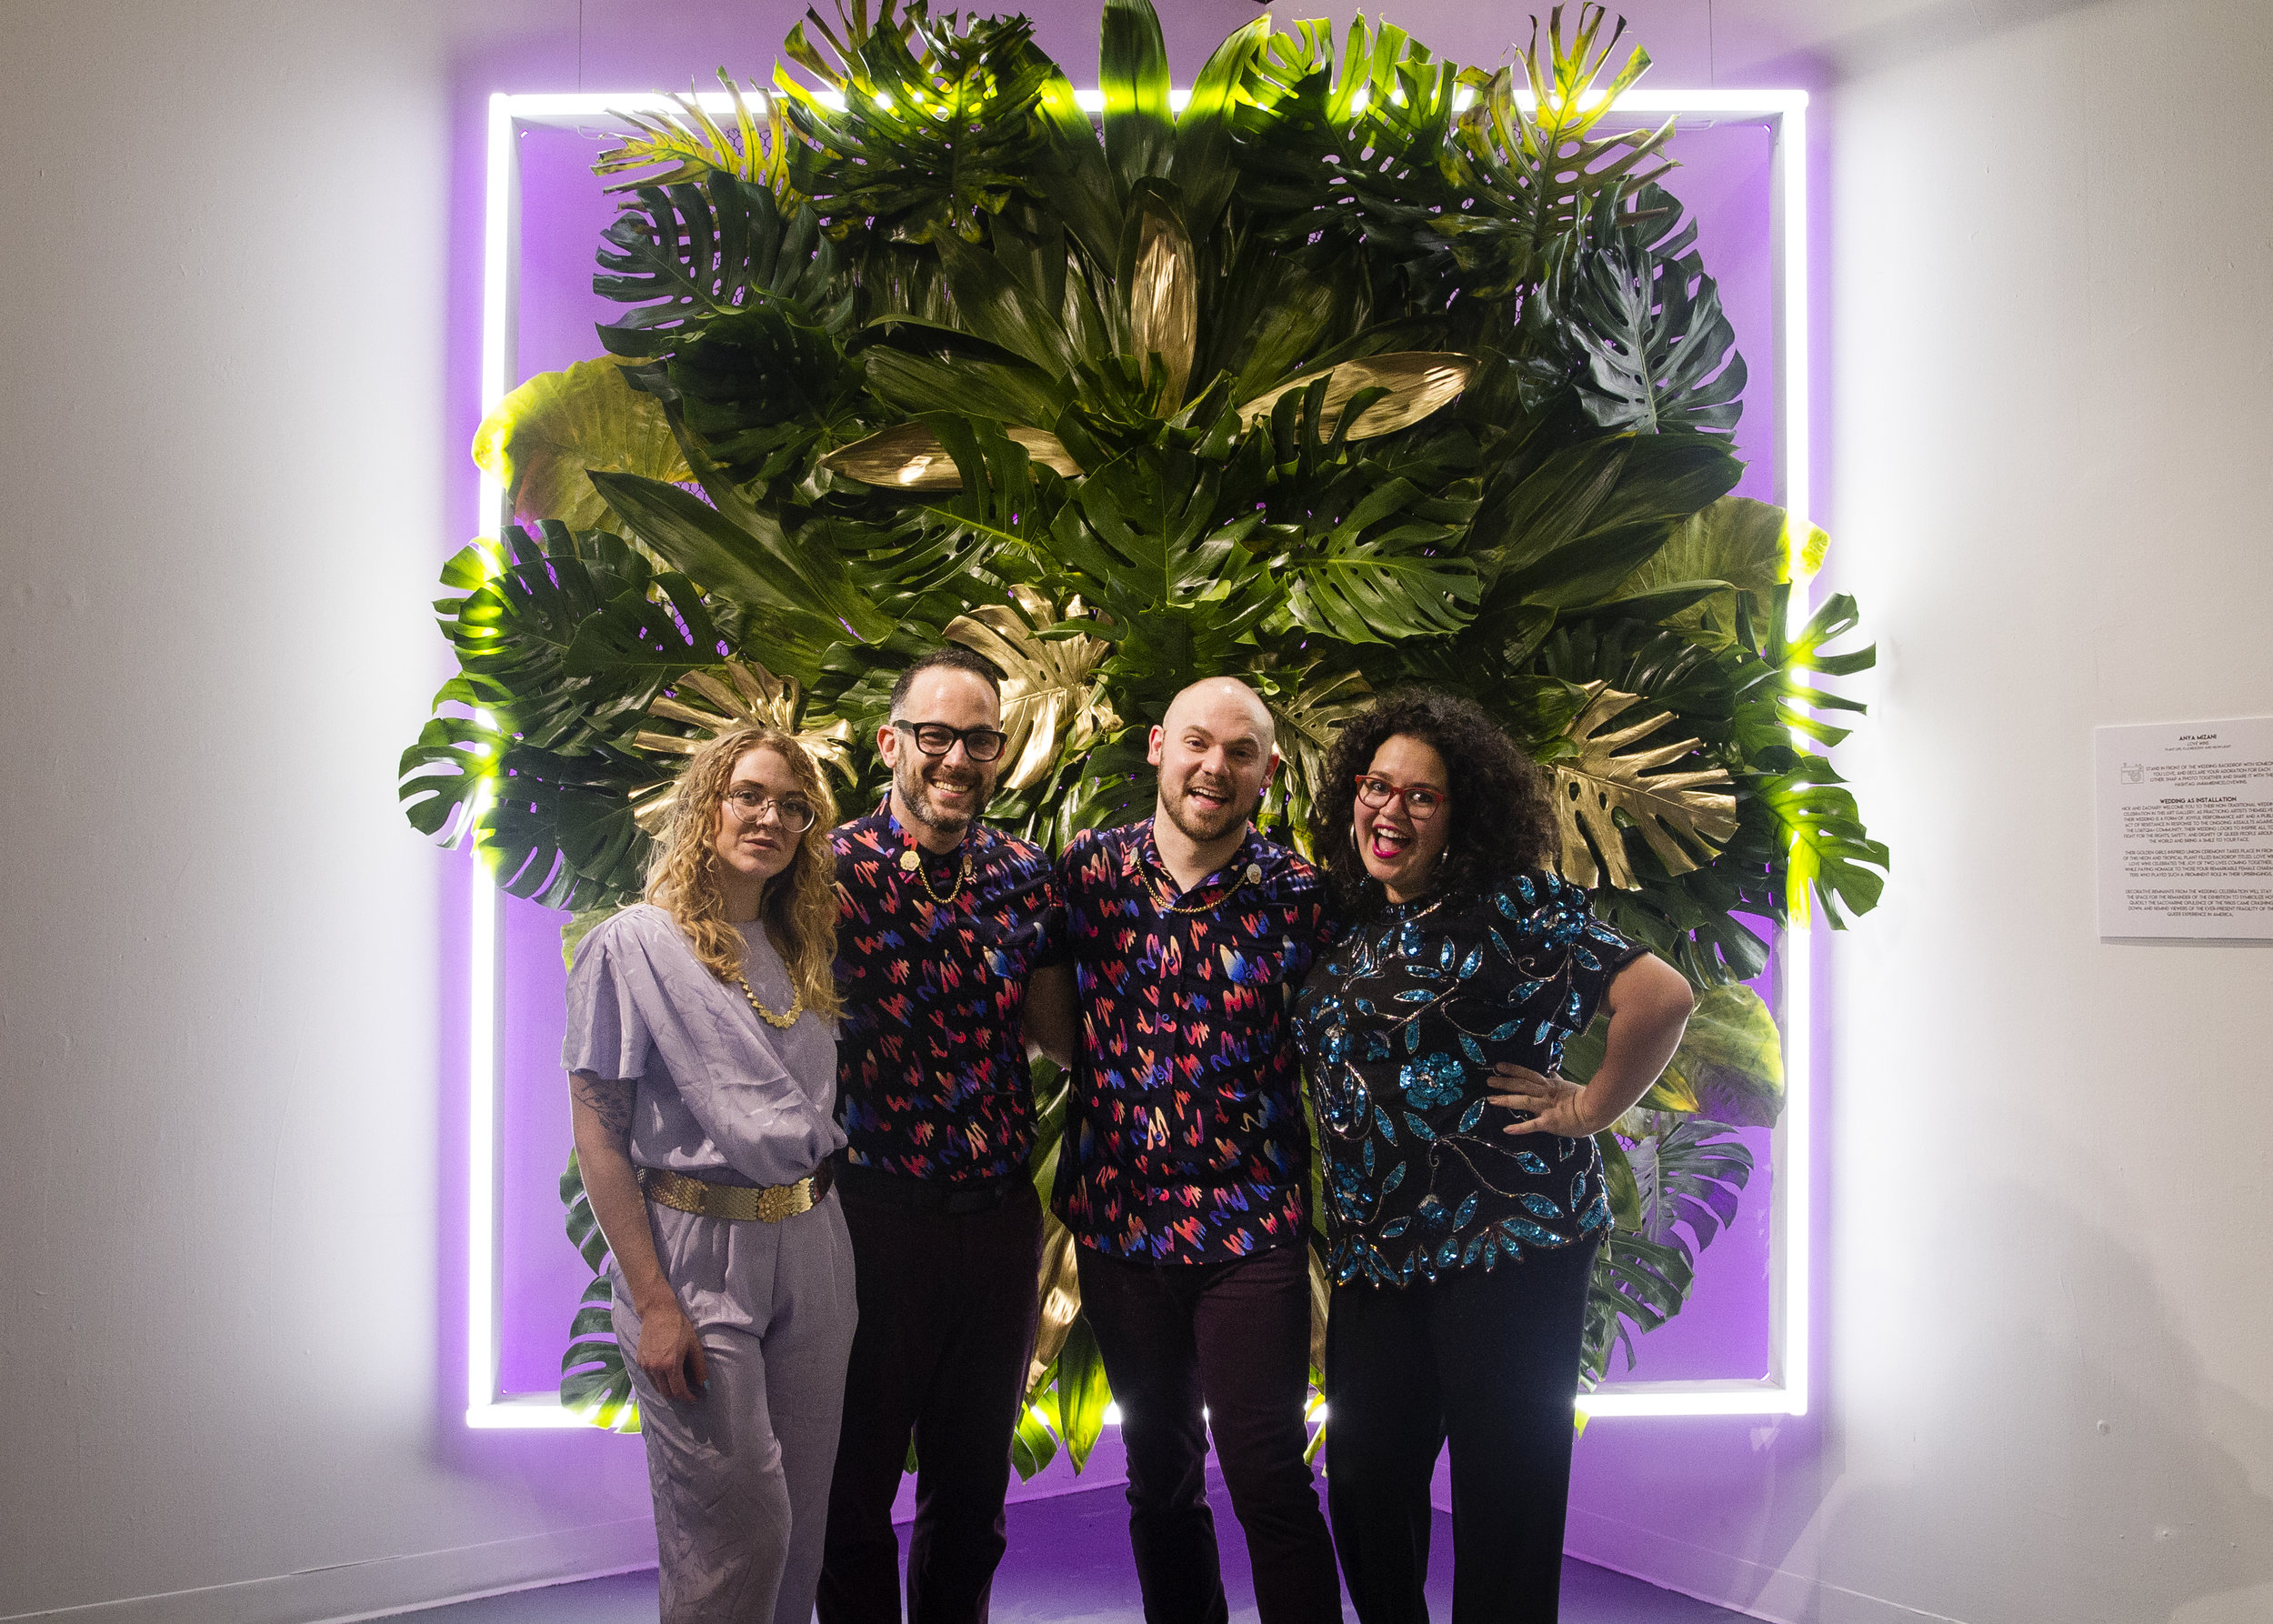 The #MiamiisNiceteam: Carlyn Thomas of Terrault Gallery, Zachary Z. Handler, Nick Horan, and yours truly. Photo by  Tiffany Jones .